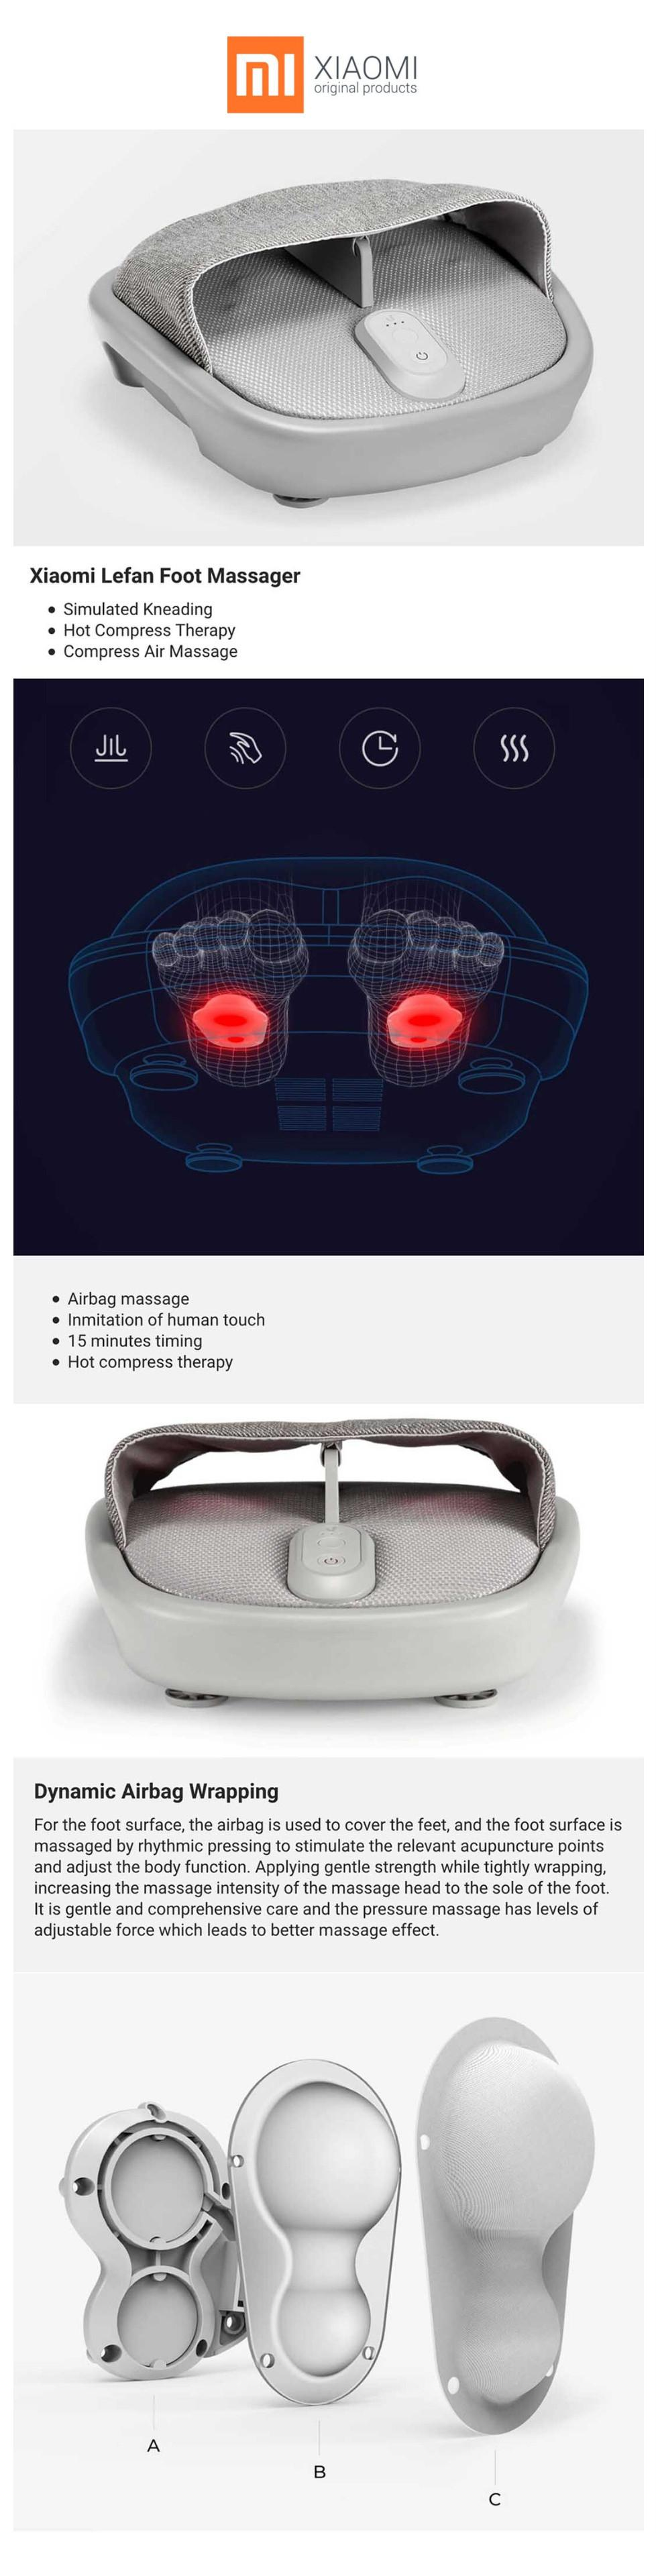 Enjoyable Set Xiaomi Momoda Foot Massager Foot Stool Scraping Massage Hot Compress Warm And Relieving Evergreenethics Interior Chair Design Evergreenethicsorg